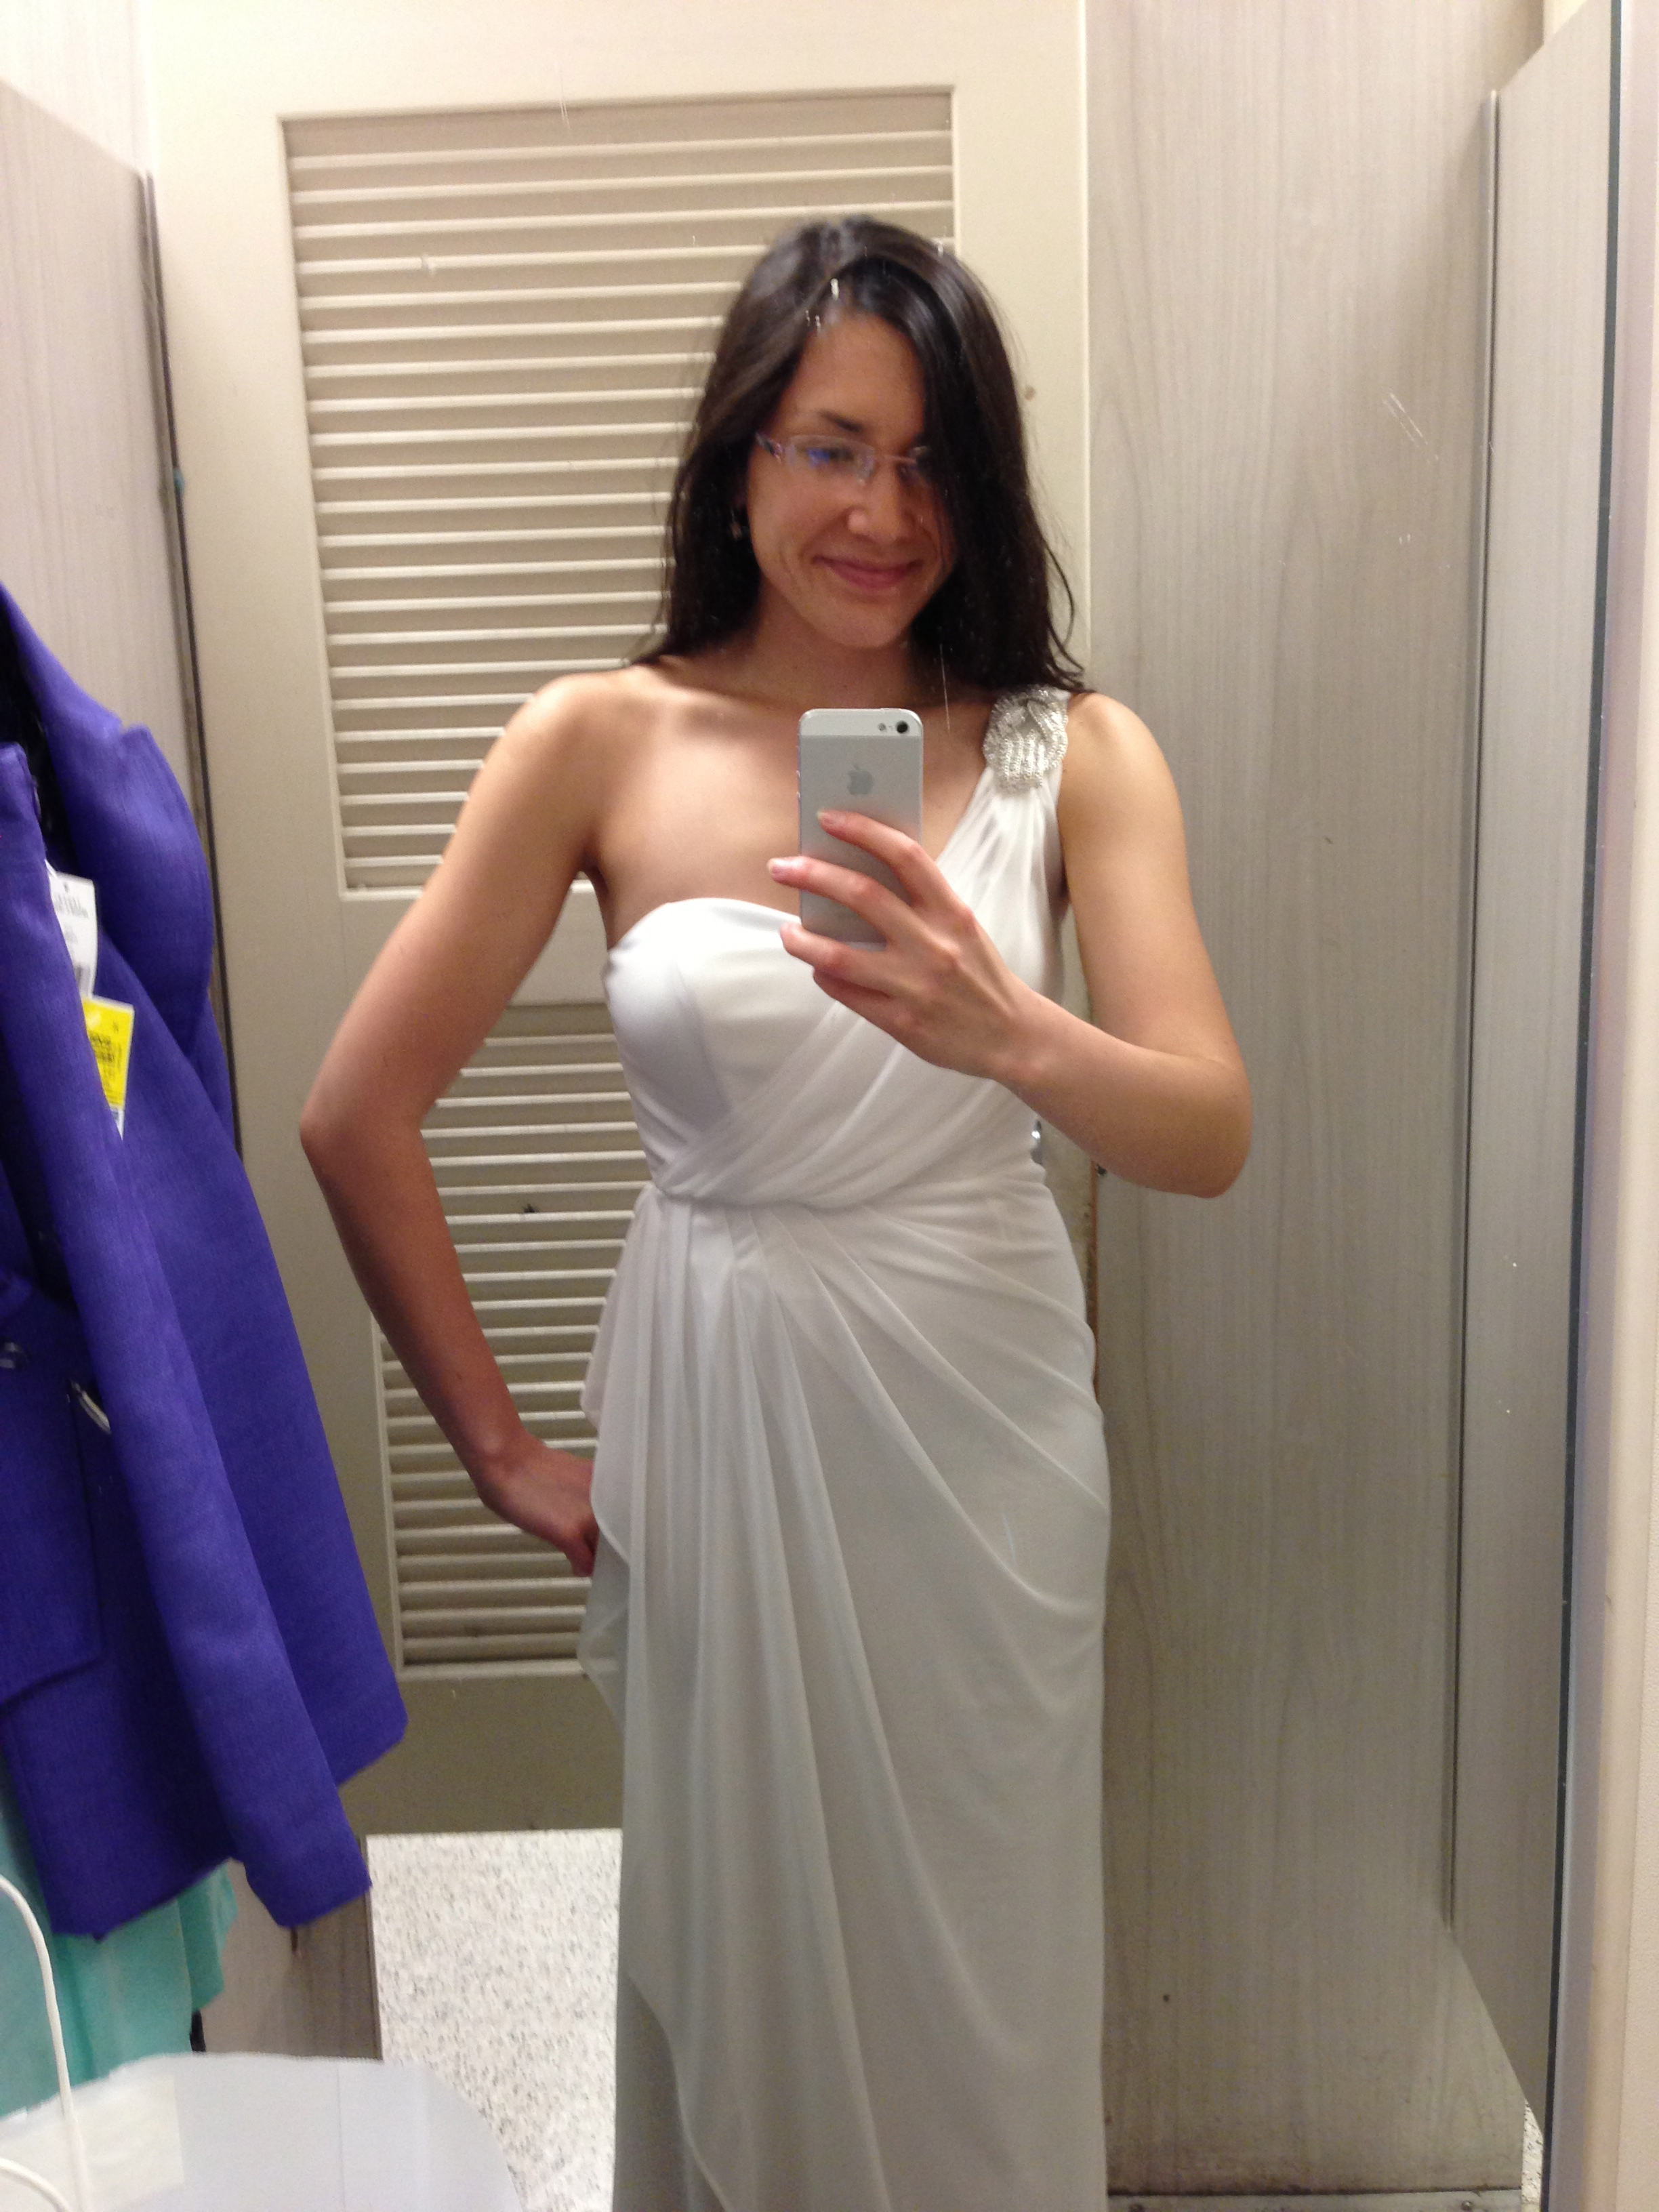 "Ha! This is not it. This is an alarmingly toga-like jersey dress that was retailing for $16.99 or so. So no. But my point is that in the nuptial glut that characterizes most people's late 20s/early 30s existence, wedding garb can mush into a whole ""All Look Same"" experience anyway. Should I just have bought this cheapie?"